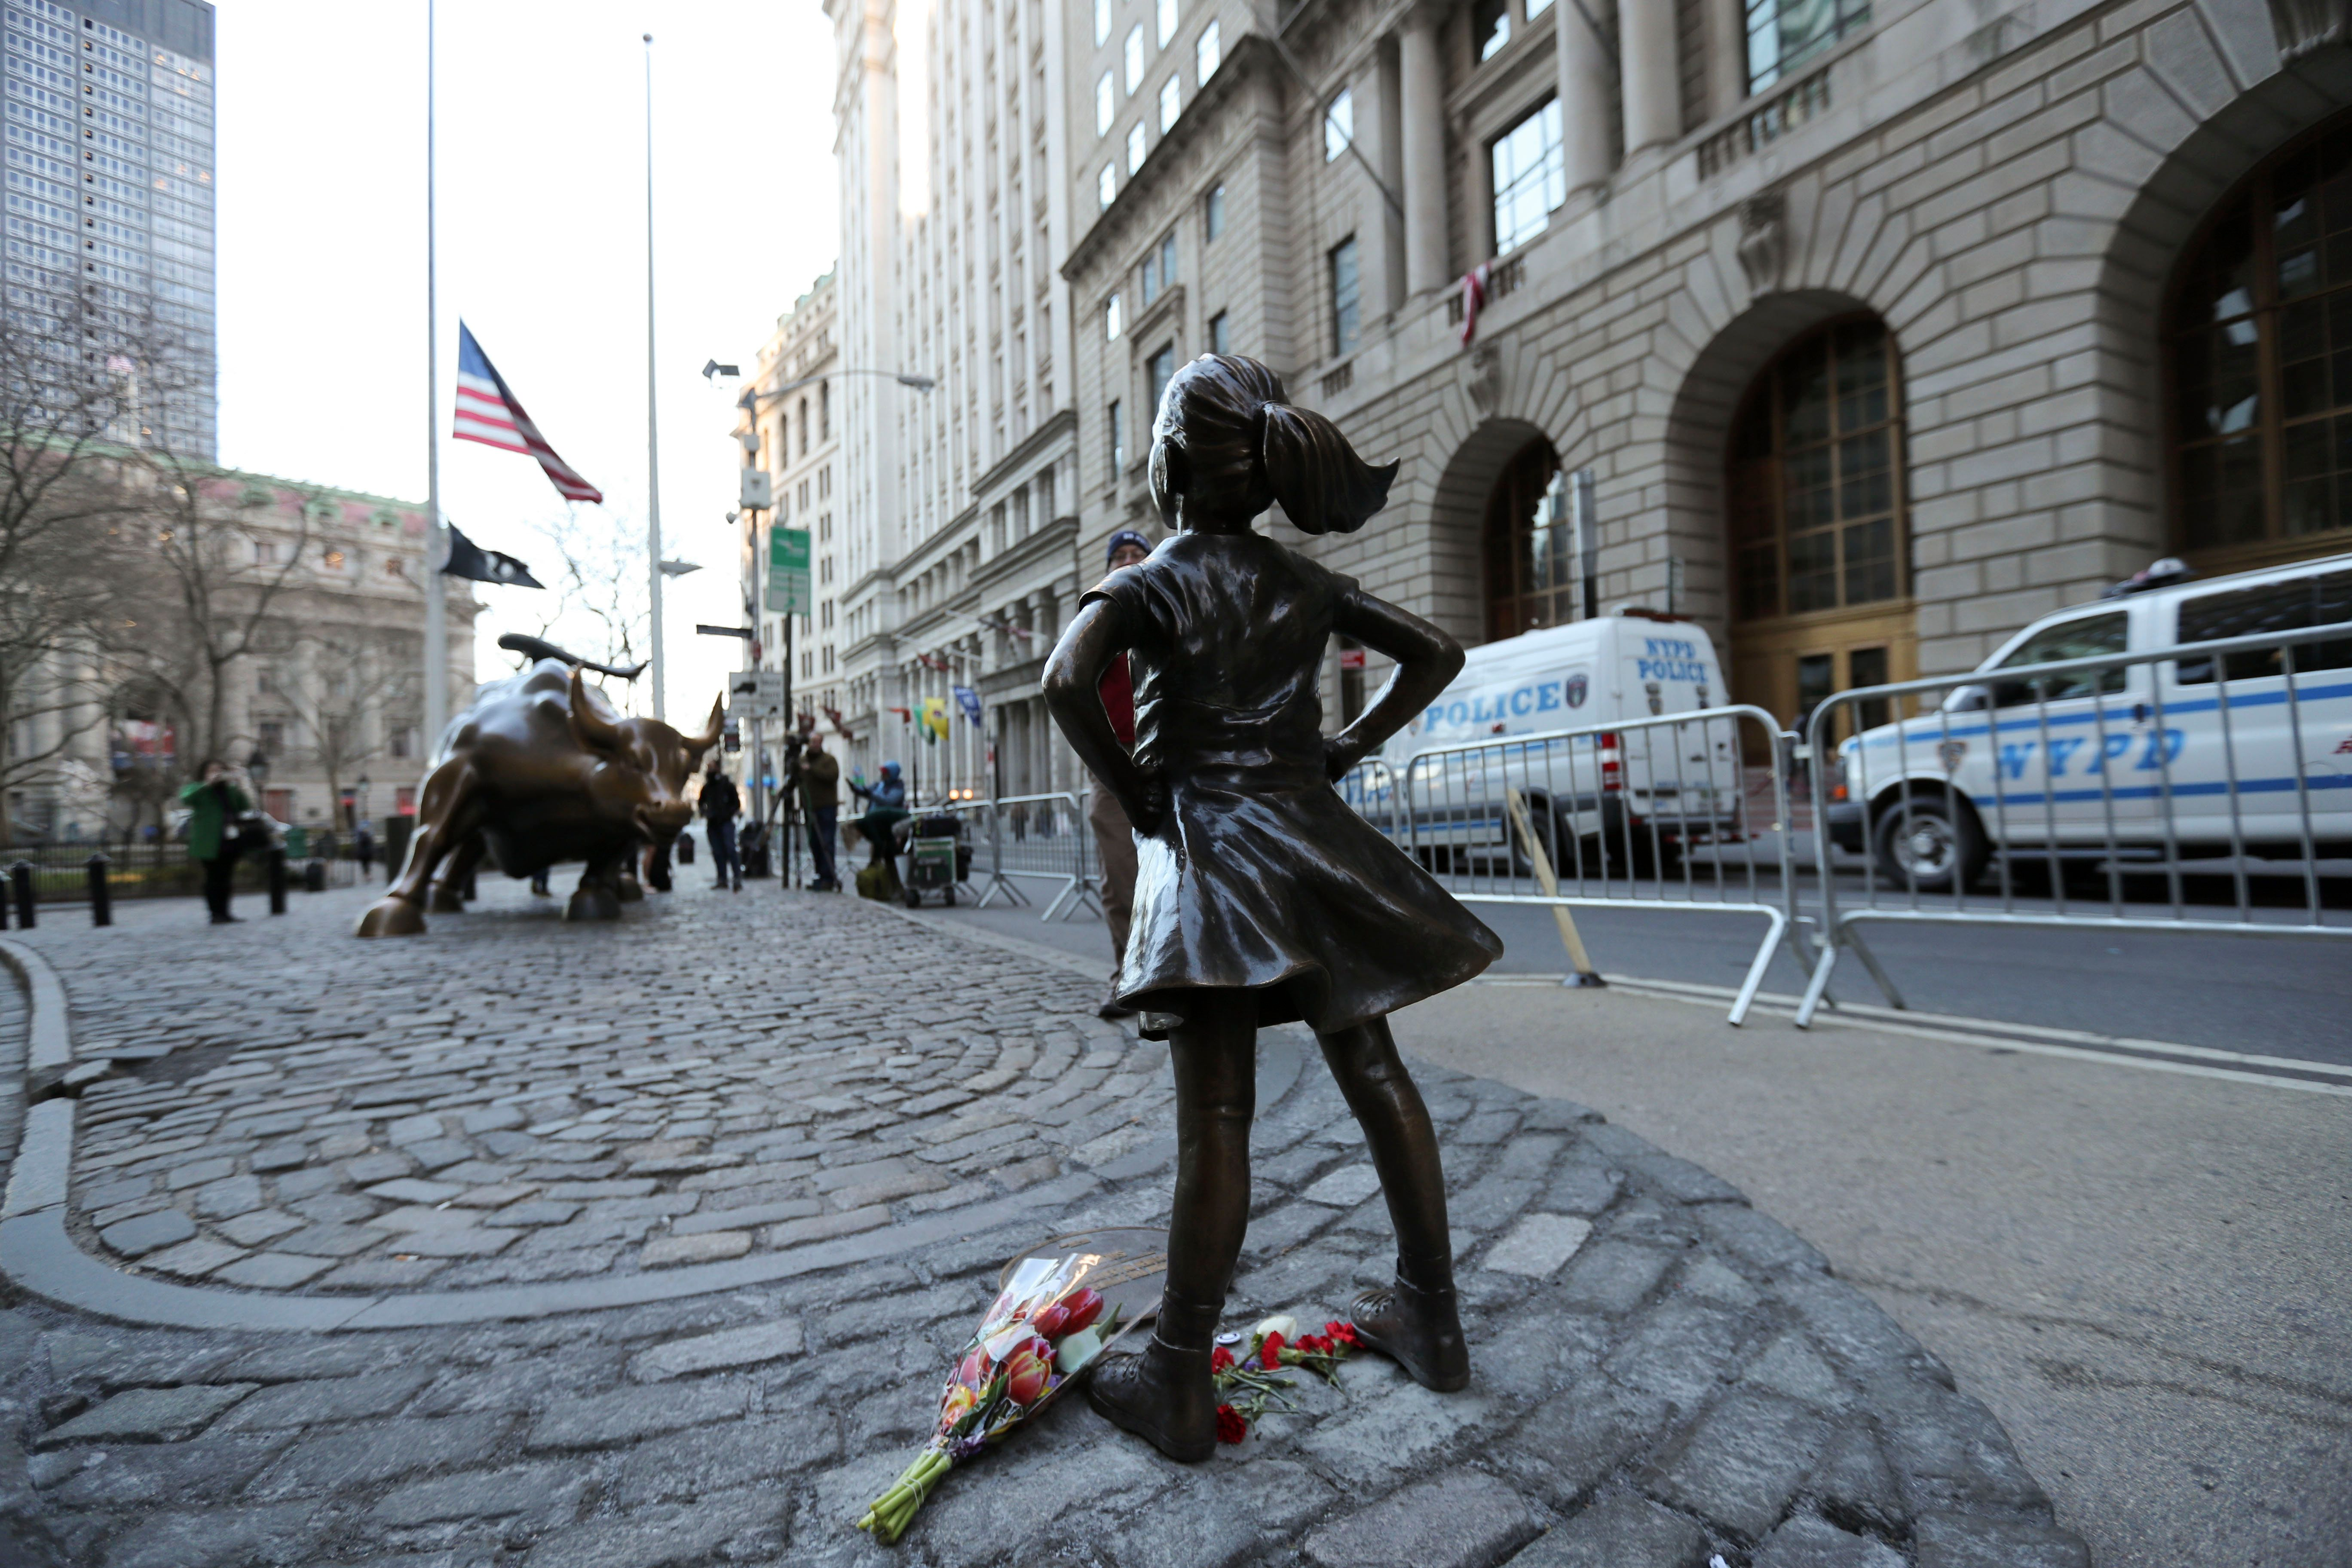 NEW YORK, March 9, 2017 :   Photo taken on March 9, 2017 shows the 'fearless girl' statue facing the bronze bull statue near the Wall Street in New York, the United States. The 'fearless girl' was put there by an investment firm which said the idea was to call attention to the lack of gender diversity in management of companies as well as how few women work in financial services, and the fact that they get paid less than men. (Xinhua/Wang Ying via Getty Images)